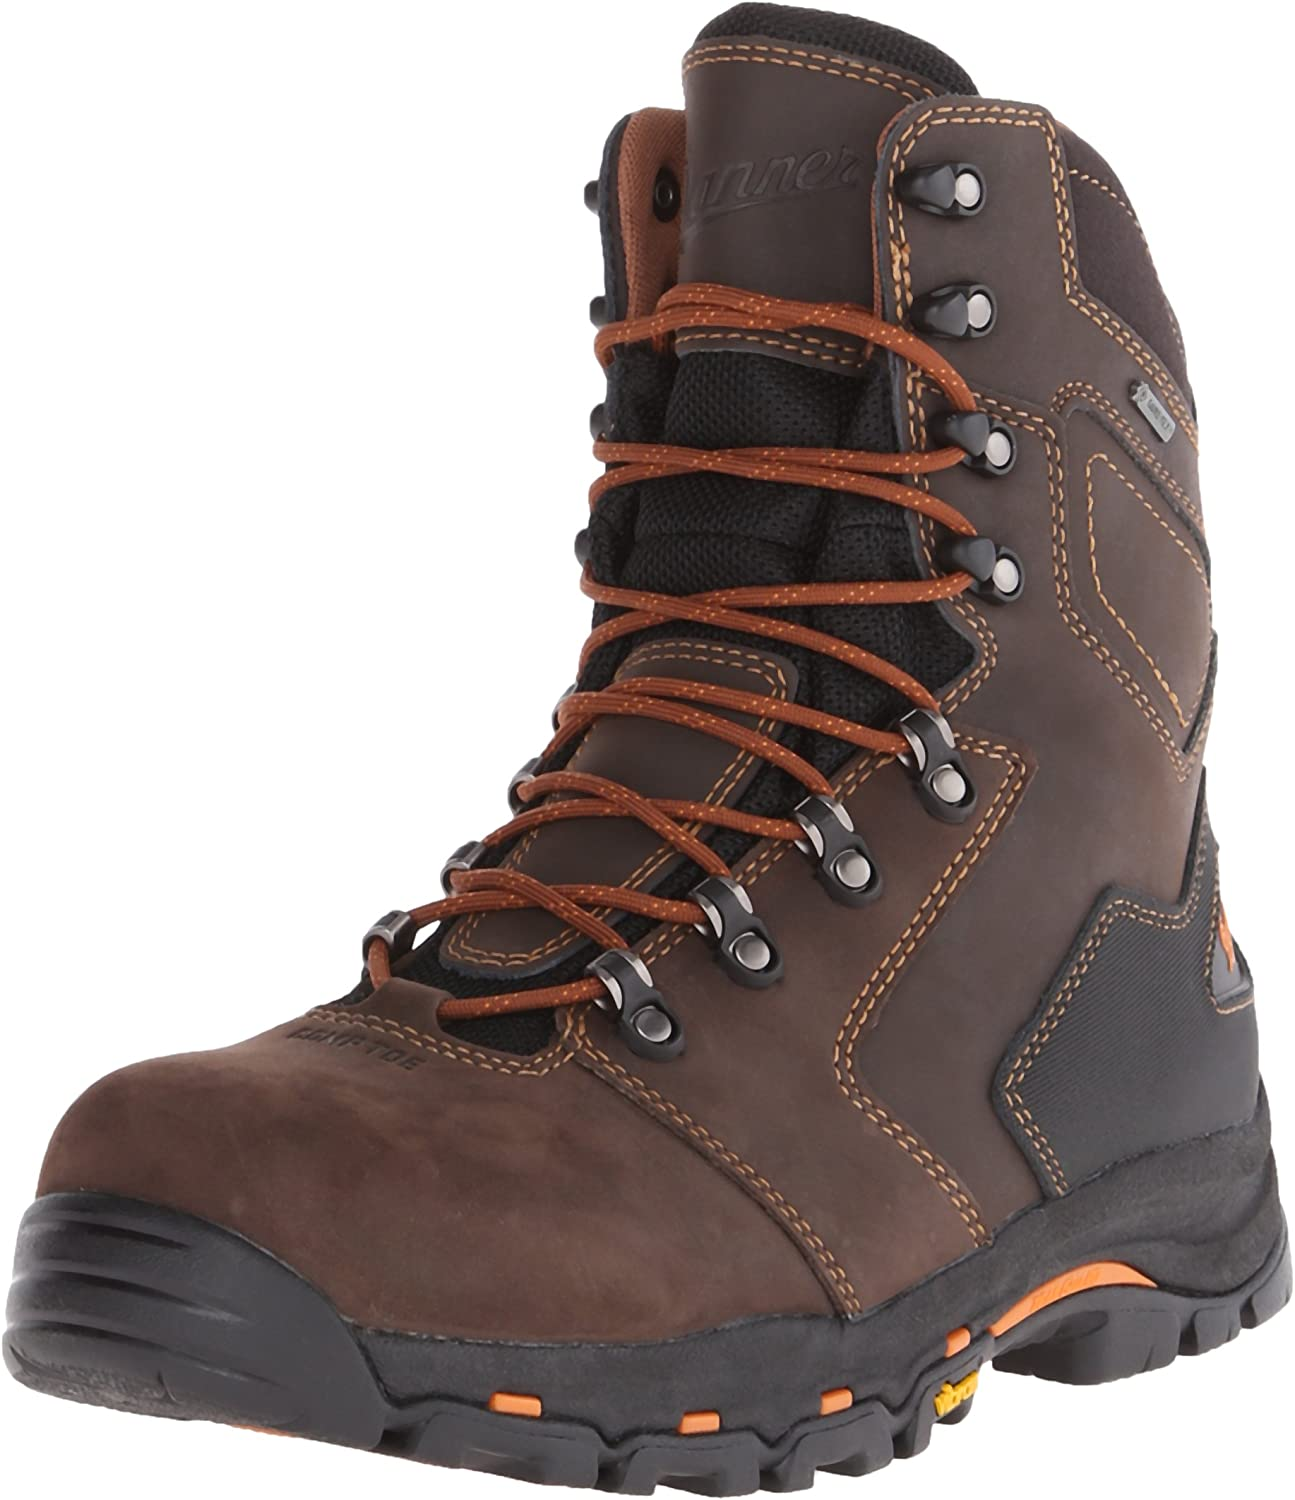 Vicious 8 Inch NMT Work Boot